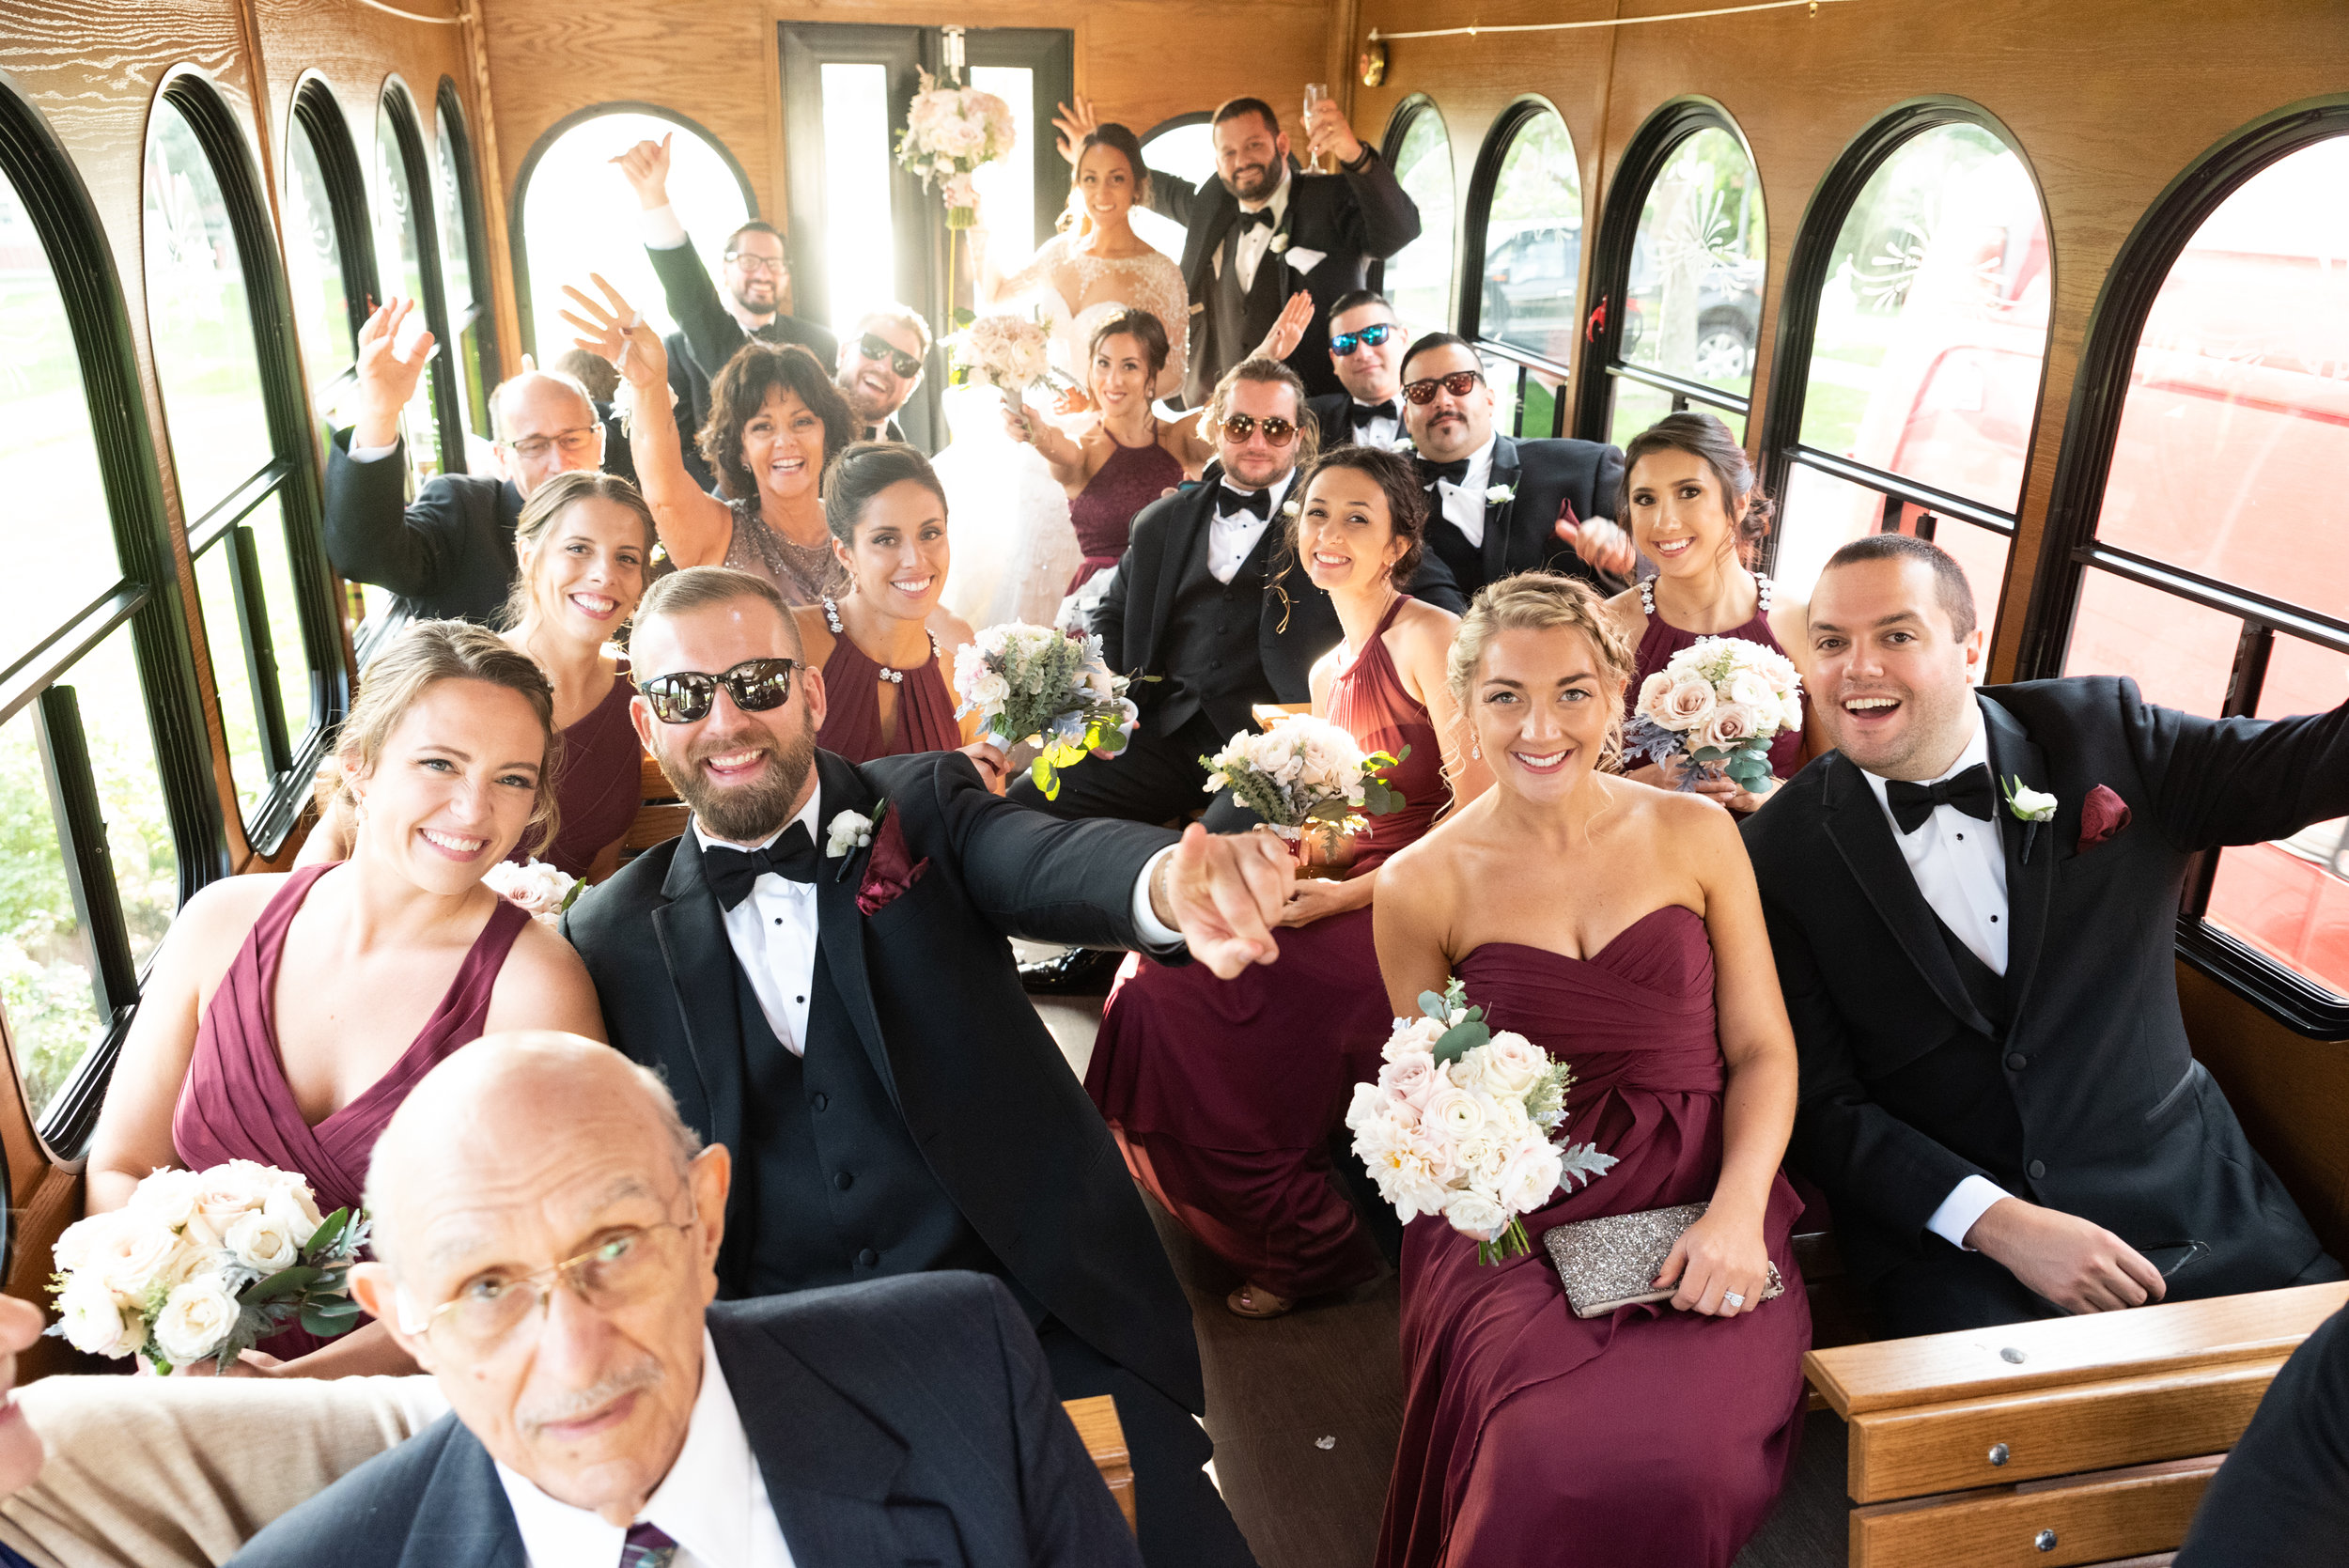 PARTY BUS - Wedding trolley, limo, or party bus, your laugher and joy from the ceremony to the reception won't be forgotten.